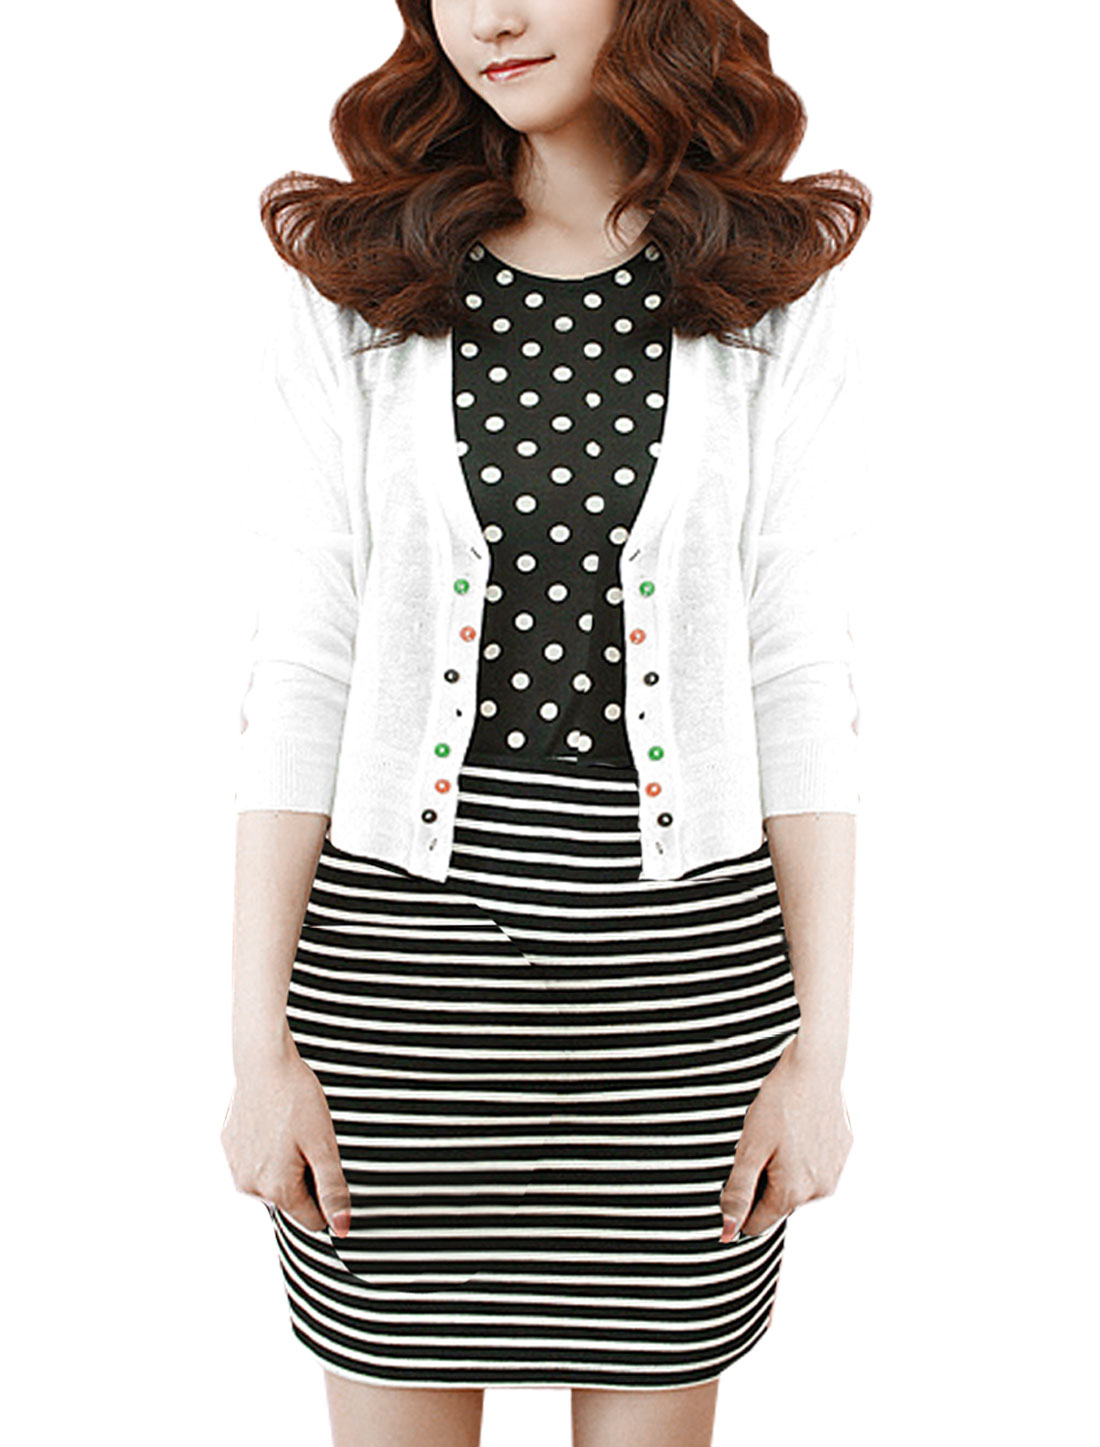 Stylish Colorful Button Decor Long Sleeve White Bolero Shrug M for Lady